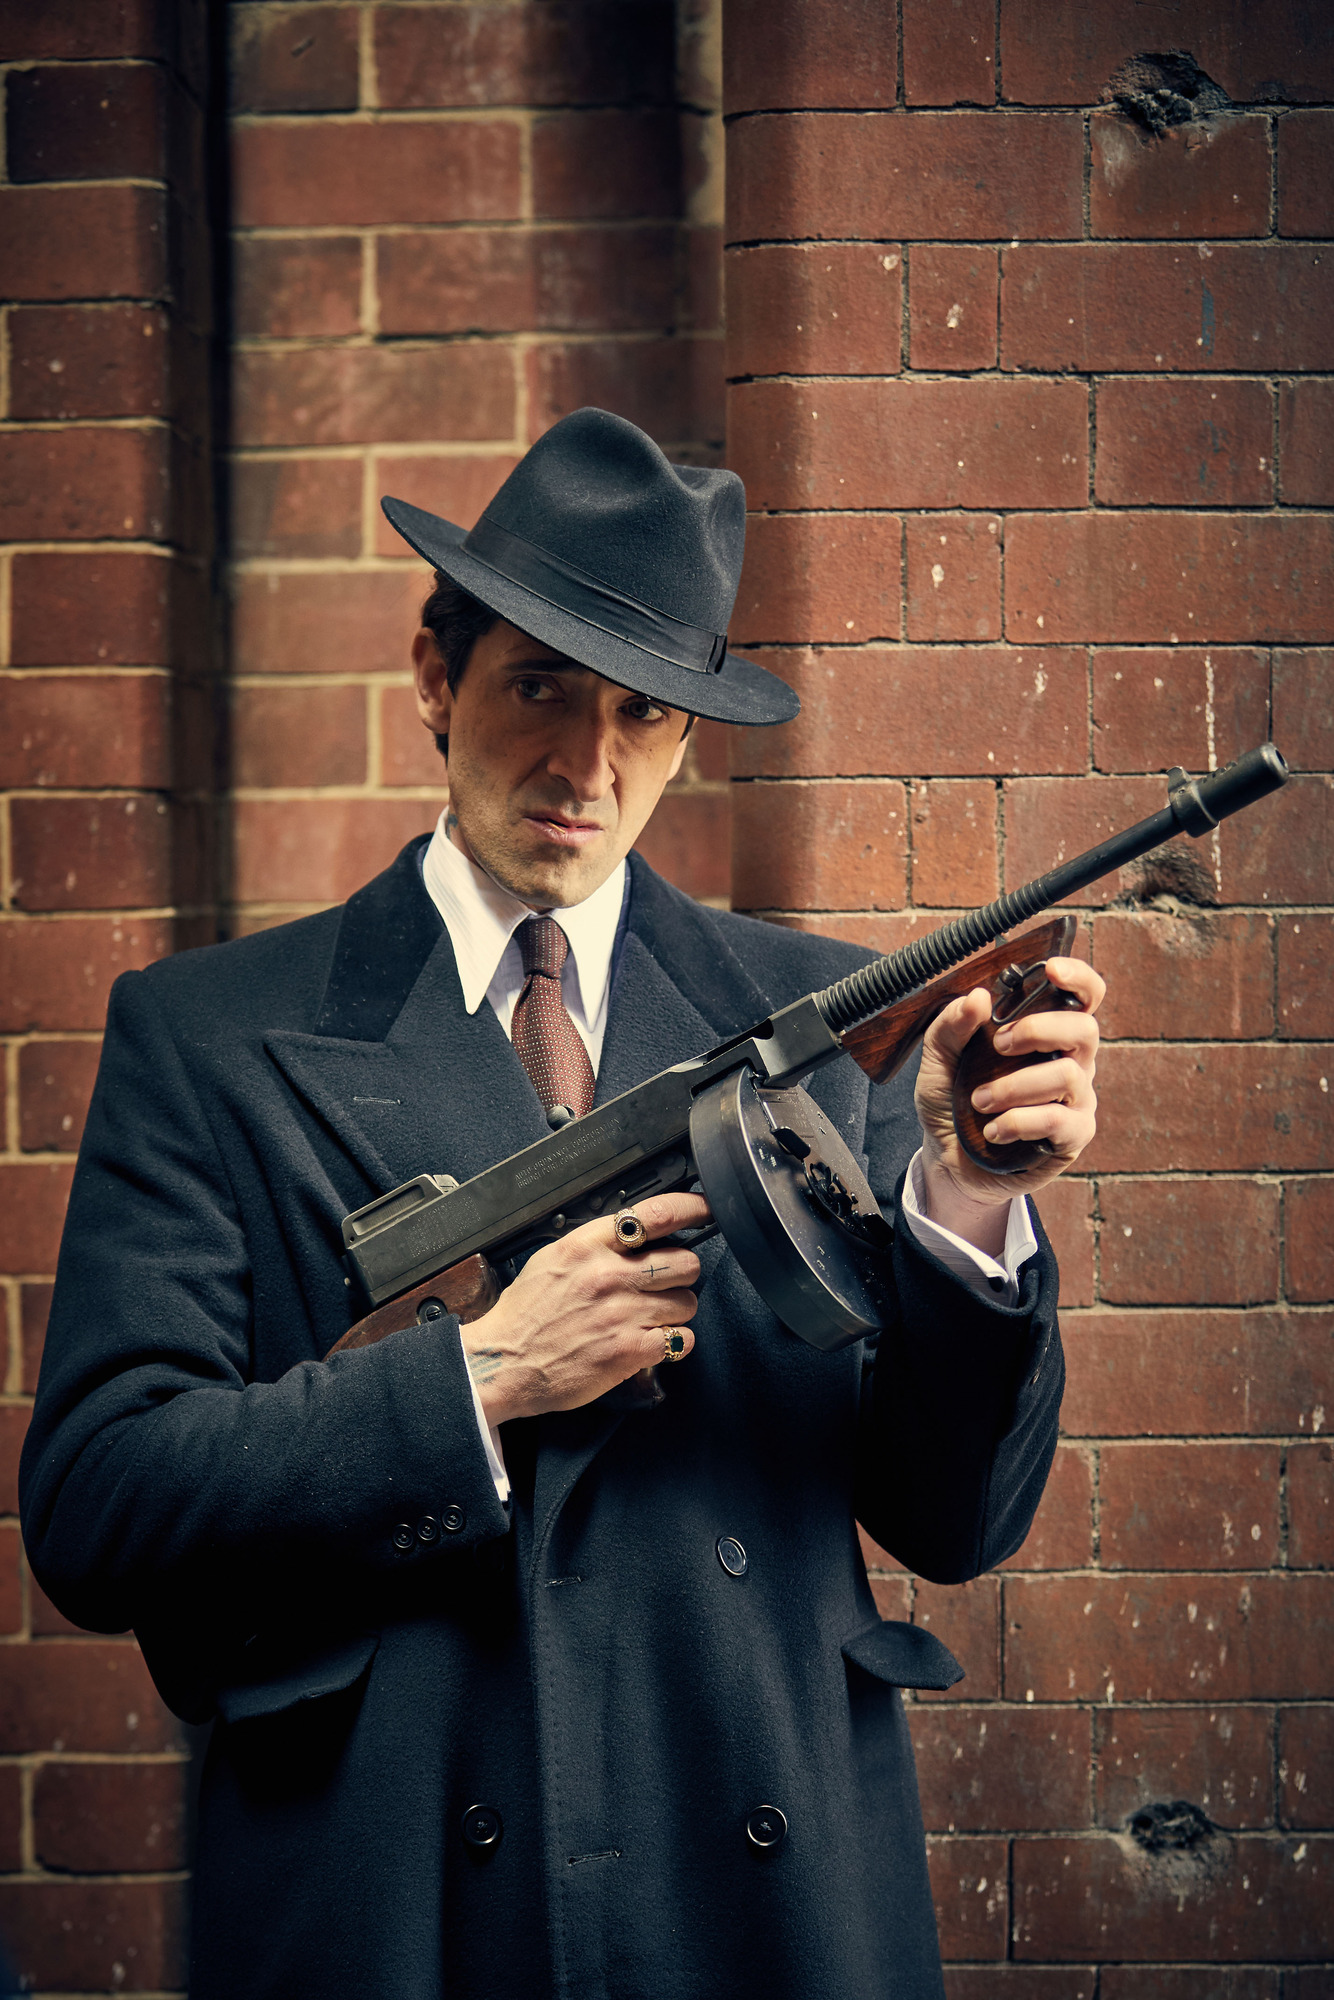 Adrien Brody as Luca Changretta in Peaky Blinders